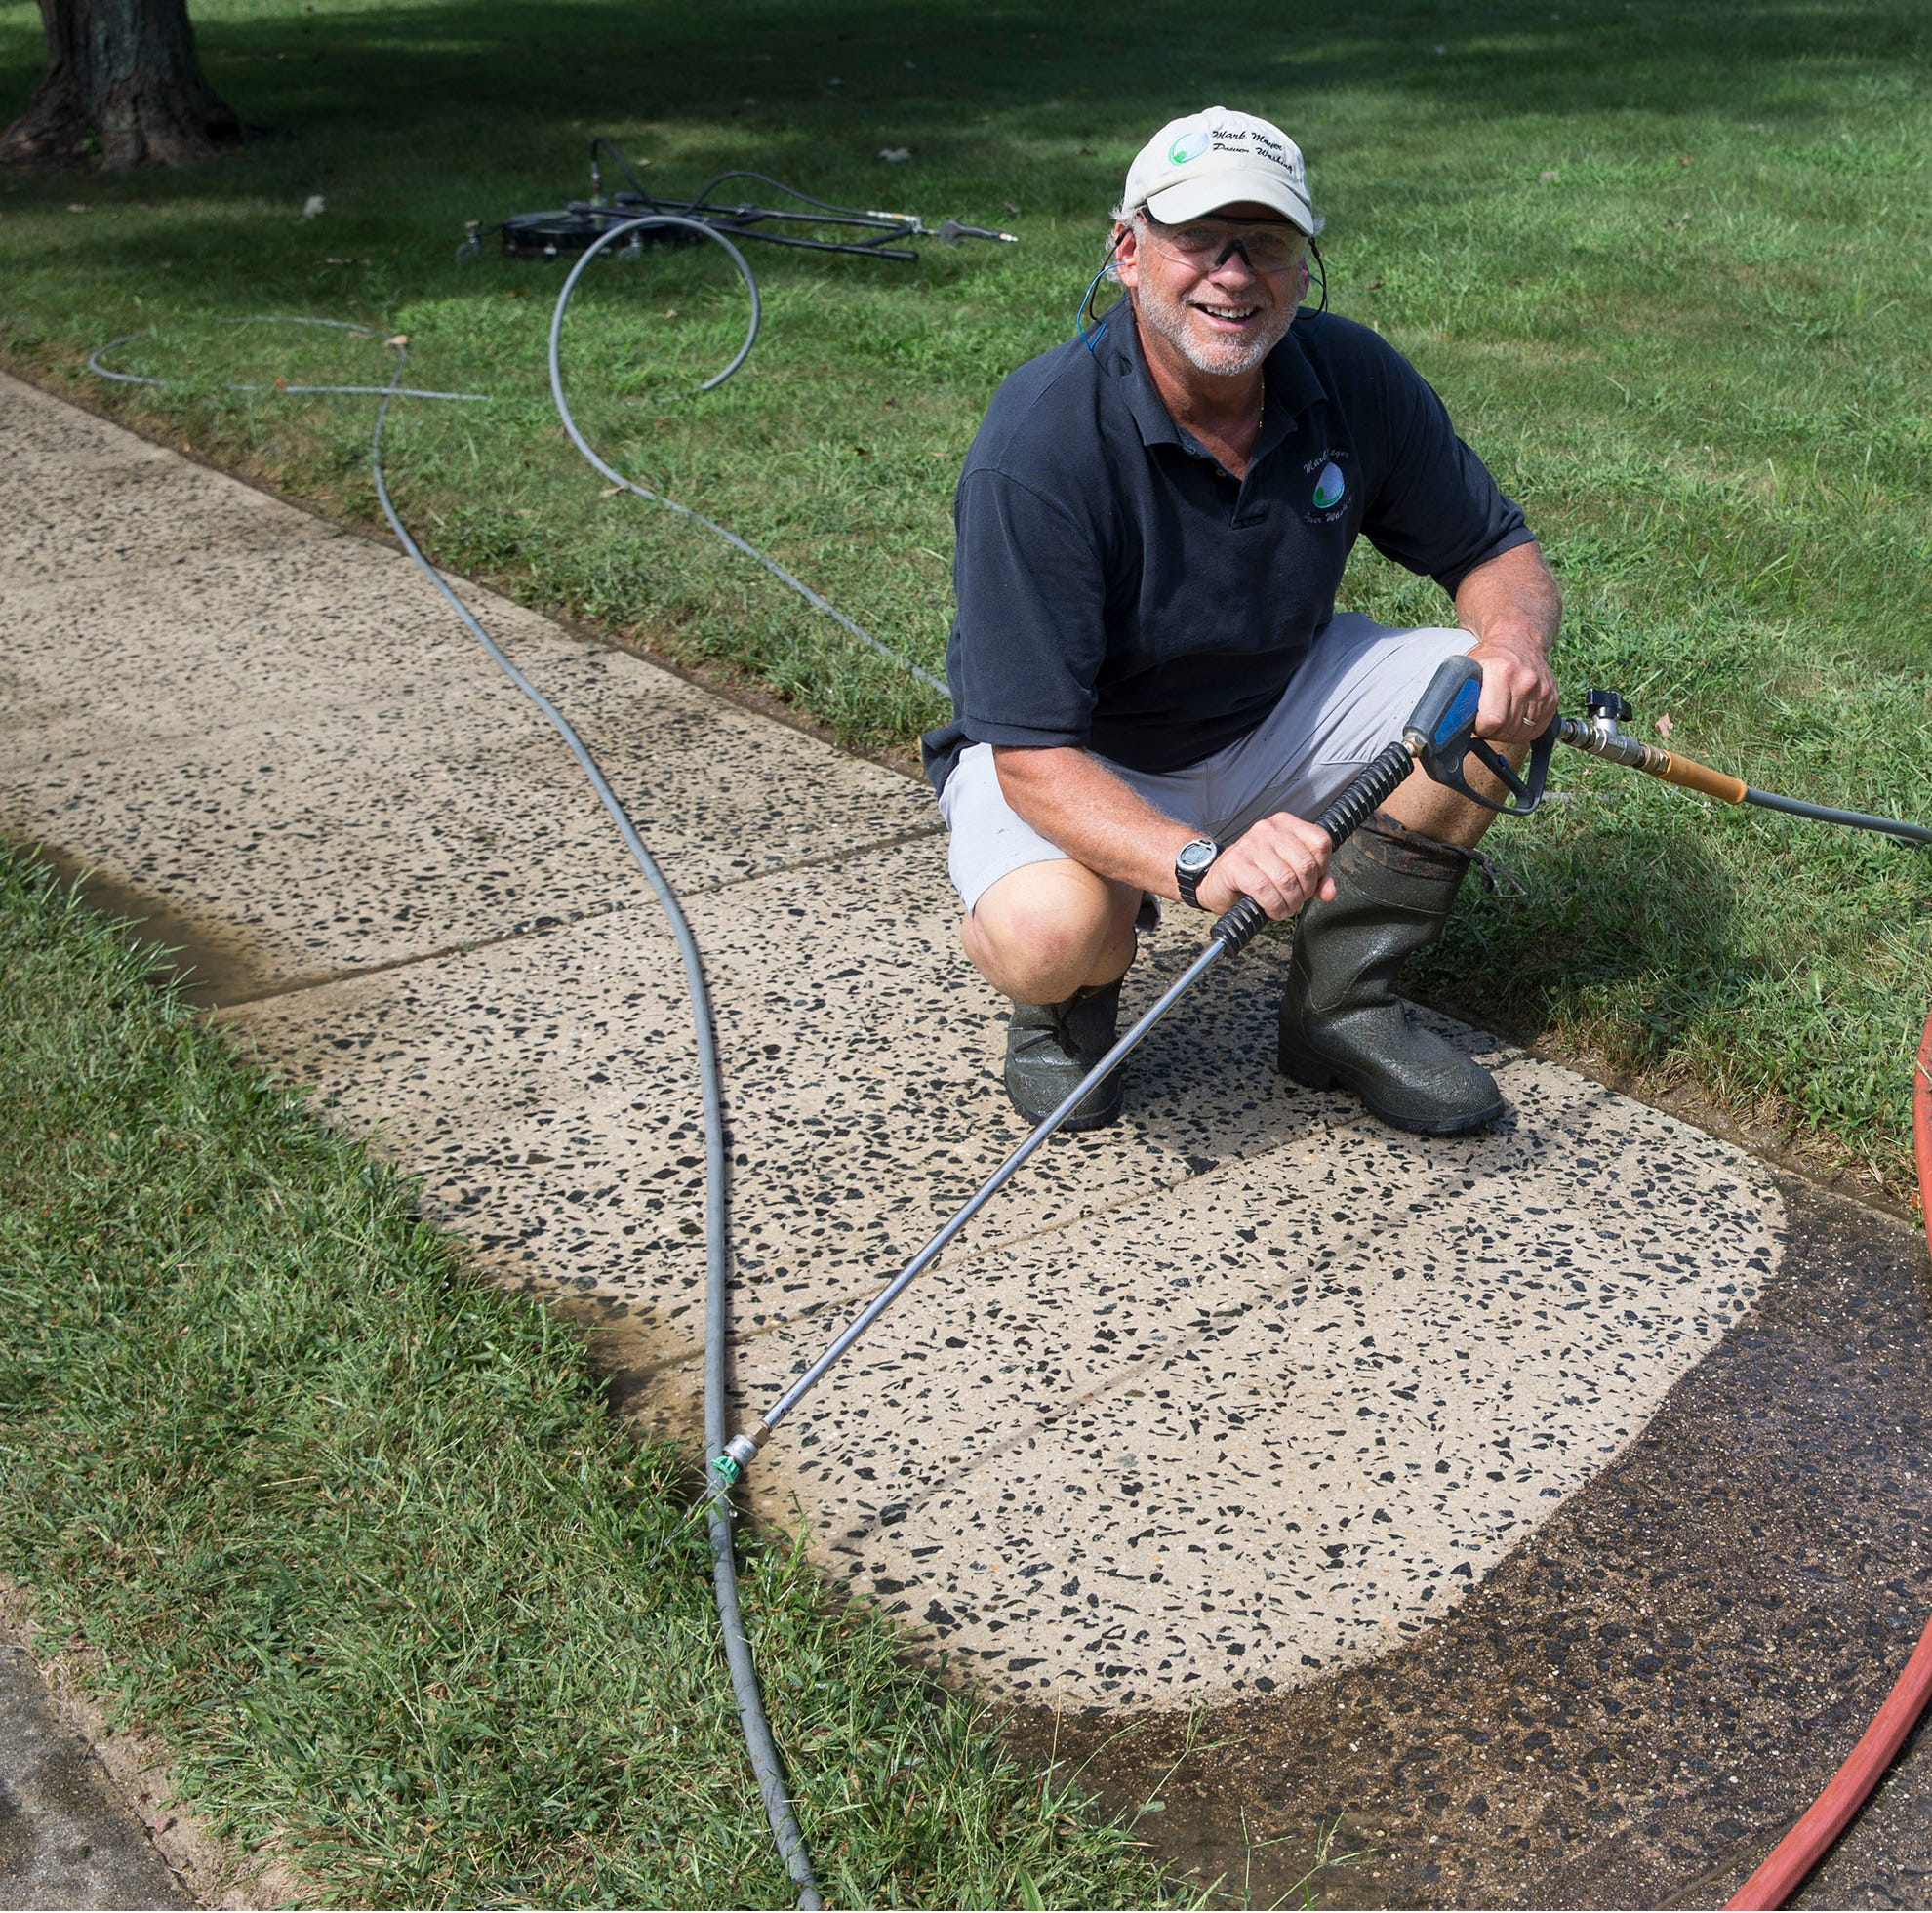 Power washer relies on clean customer service